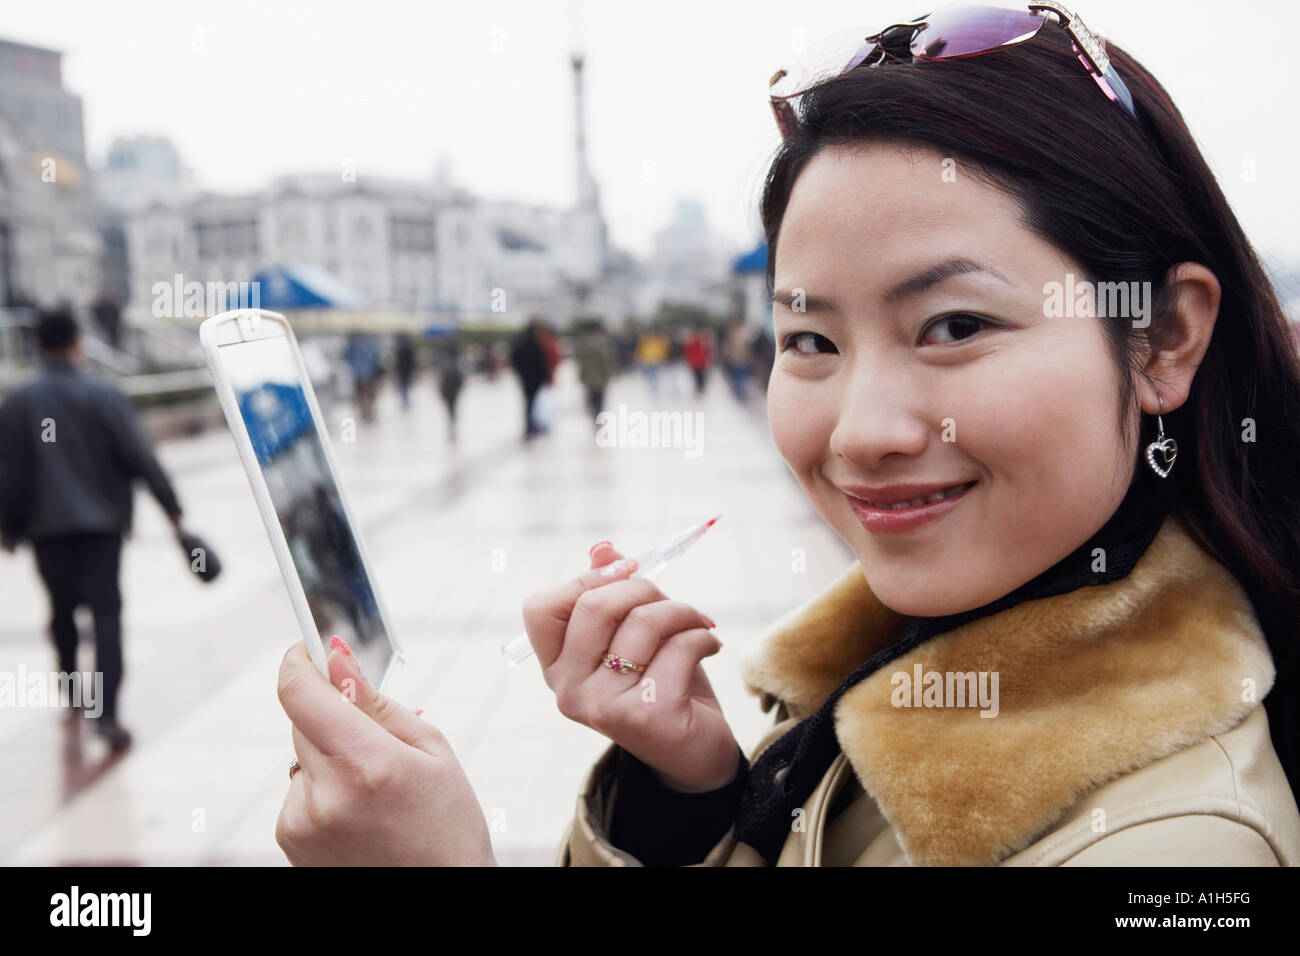 Side profile of a young woman holding a mirror smiling - Stock Image